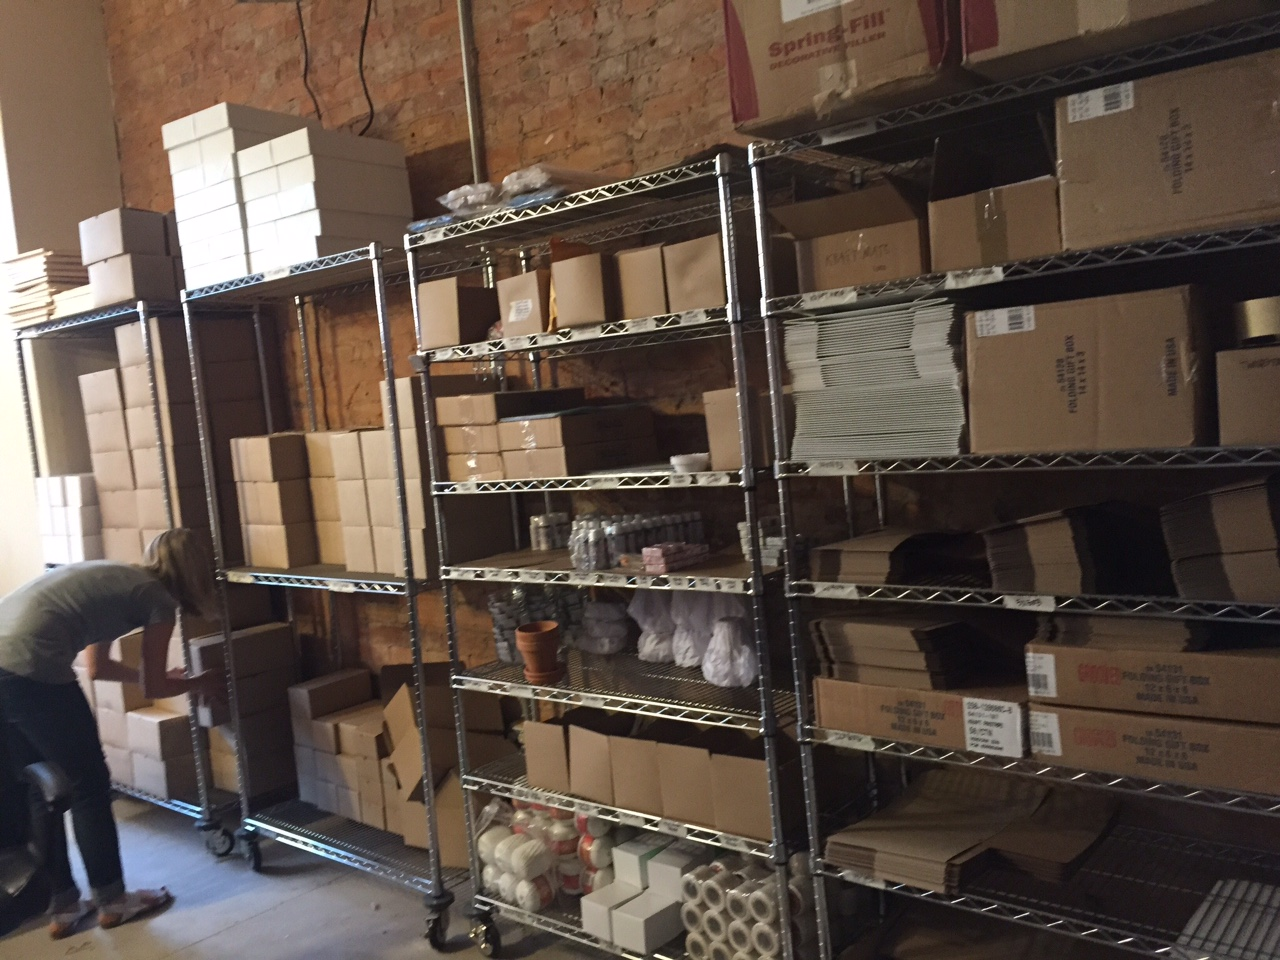 GILD Collective's first warehouse, with shelves full of crafting supplies.